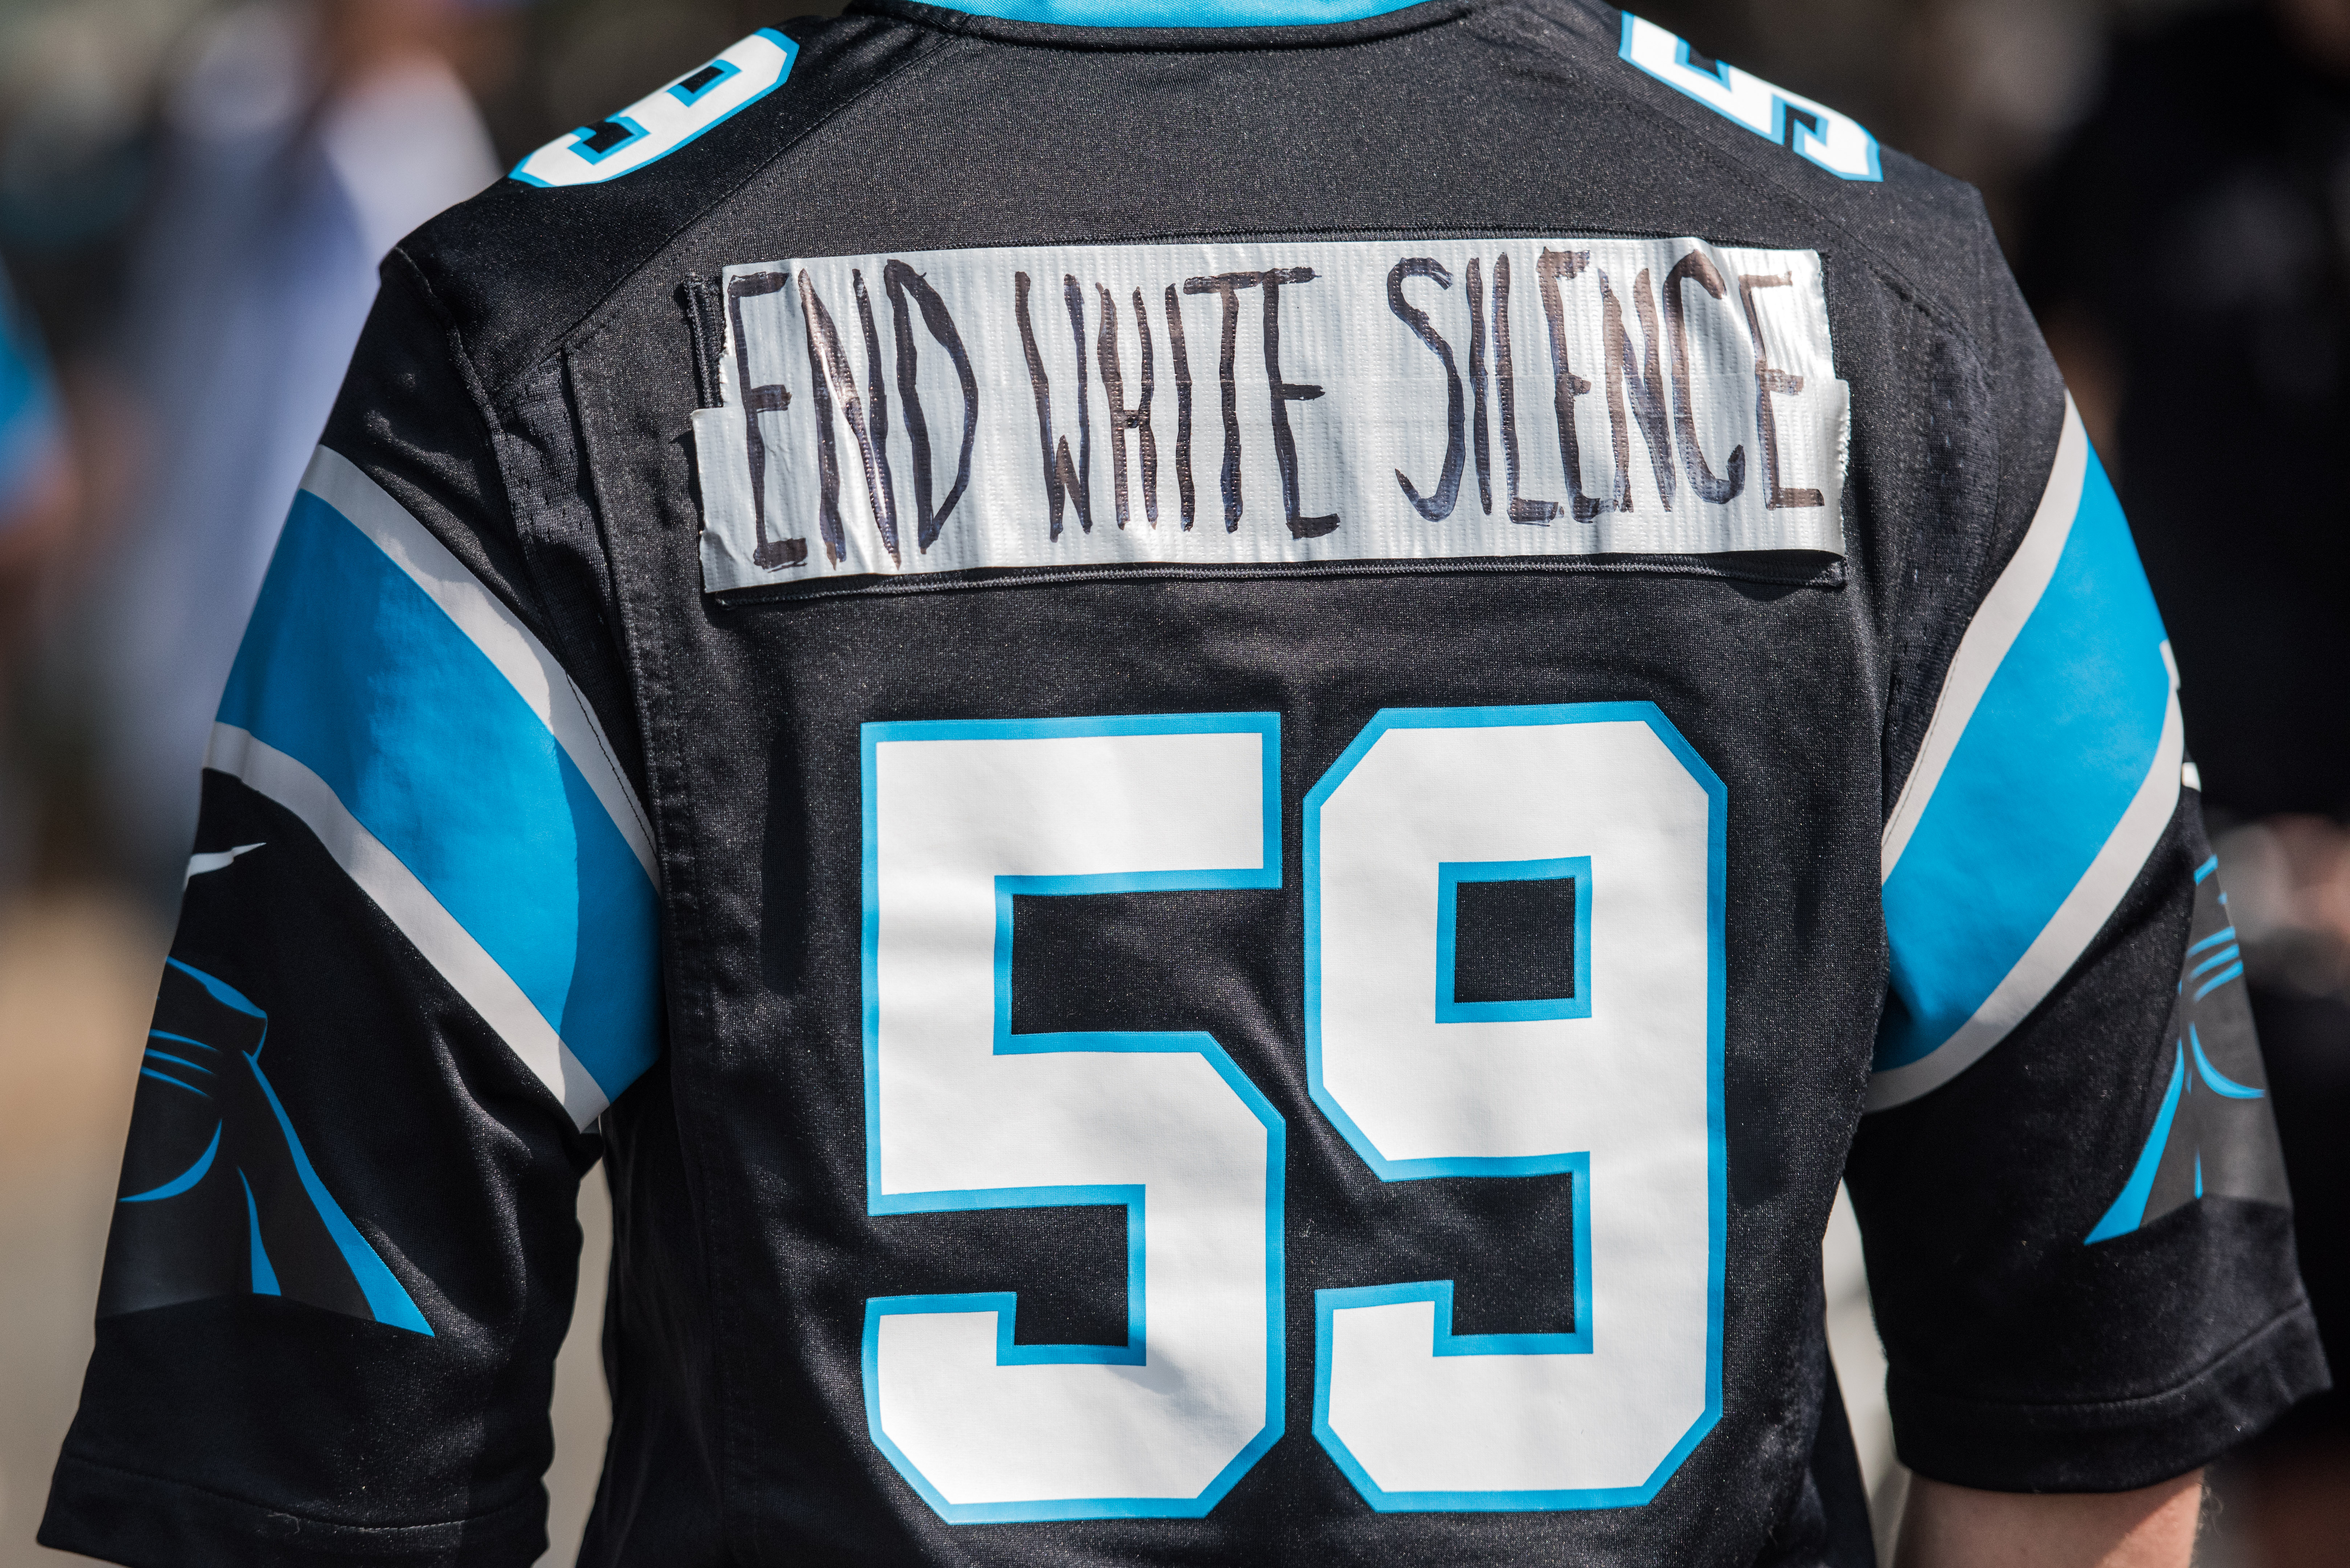 CHARLOTTE, NC - SEPTEMBER 25: A demonstrator wears a Carolina Panthers jersey outside of Bank of America Stadium before an NFL football game between the Charlotte Panthers and the Minnesota Vikings September 25, 2016 in Charlotte, NC. Protests have disrupted the city since Tuesday night following the shooting of 43-year-old Keith Lamont Scott at an apartment complex near UNC Charlotte. (Photo by Sean Rayford/Getty Images)